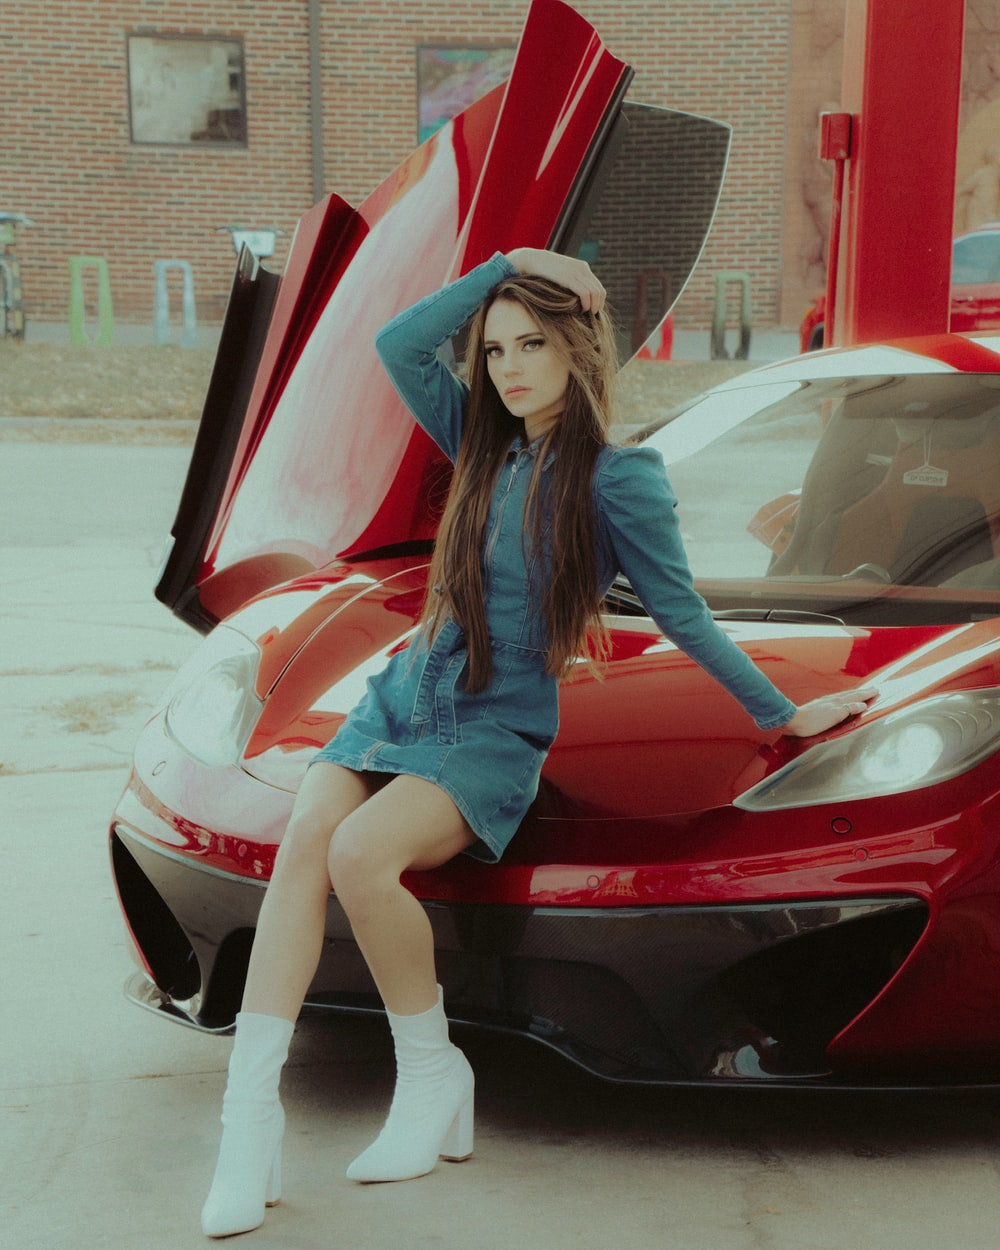 woman in blue long sleeve shirt and white denim shorts sitting on red car